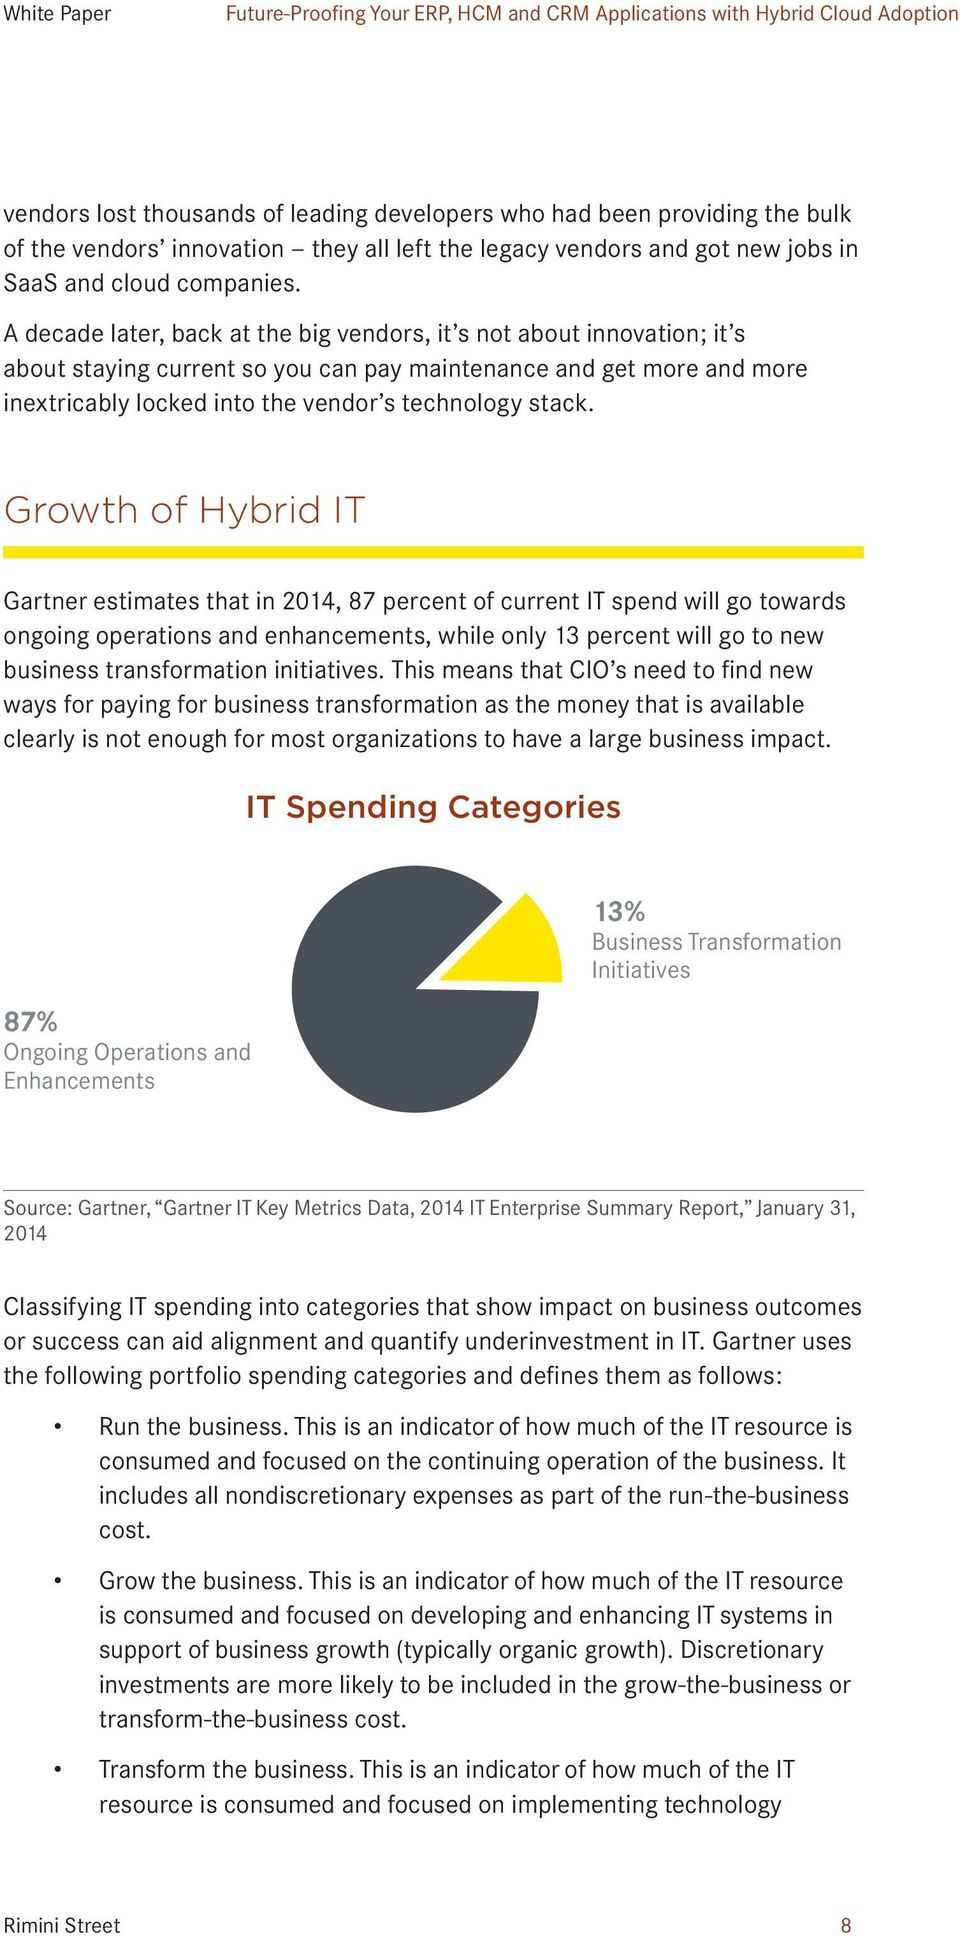 Growth of Hybrid IT Gartner estimates that in 2014, 87 percent of current IT spend will go towards ongoing operations and enhancements, while only 13 percent will go to new business transformation